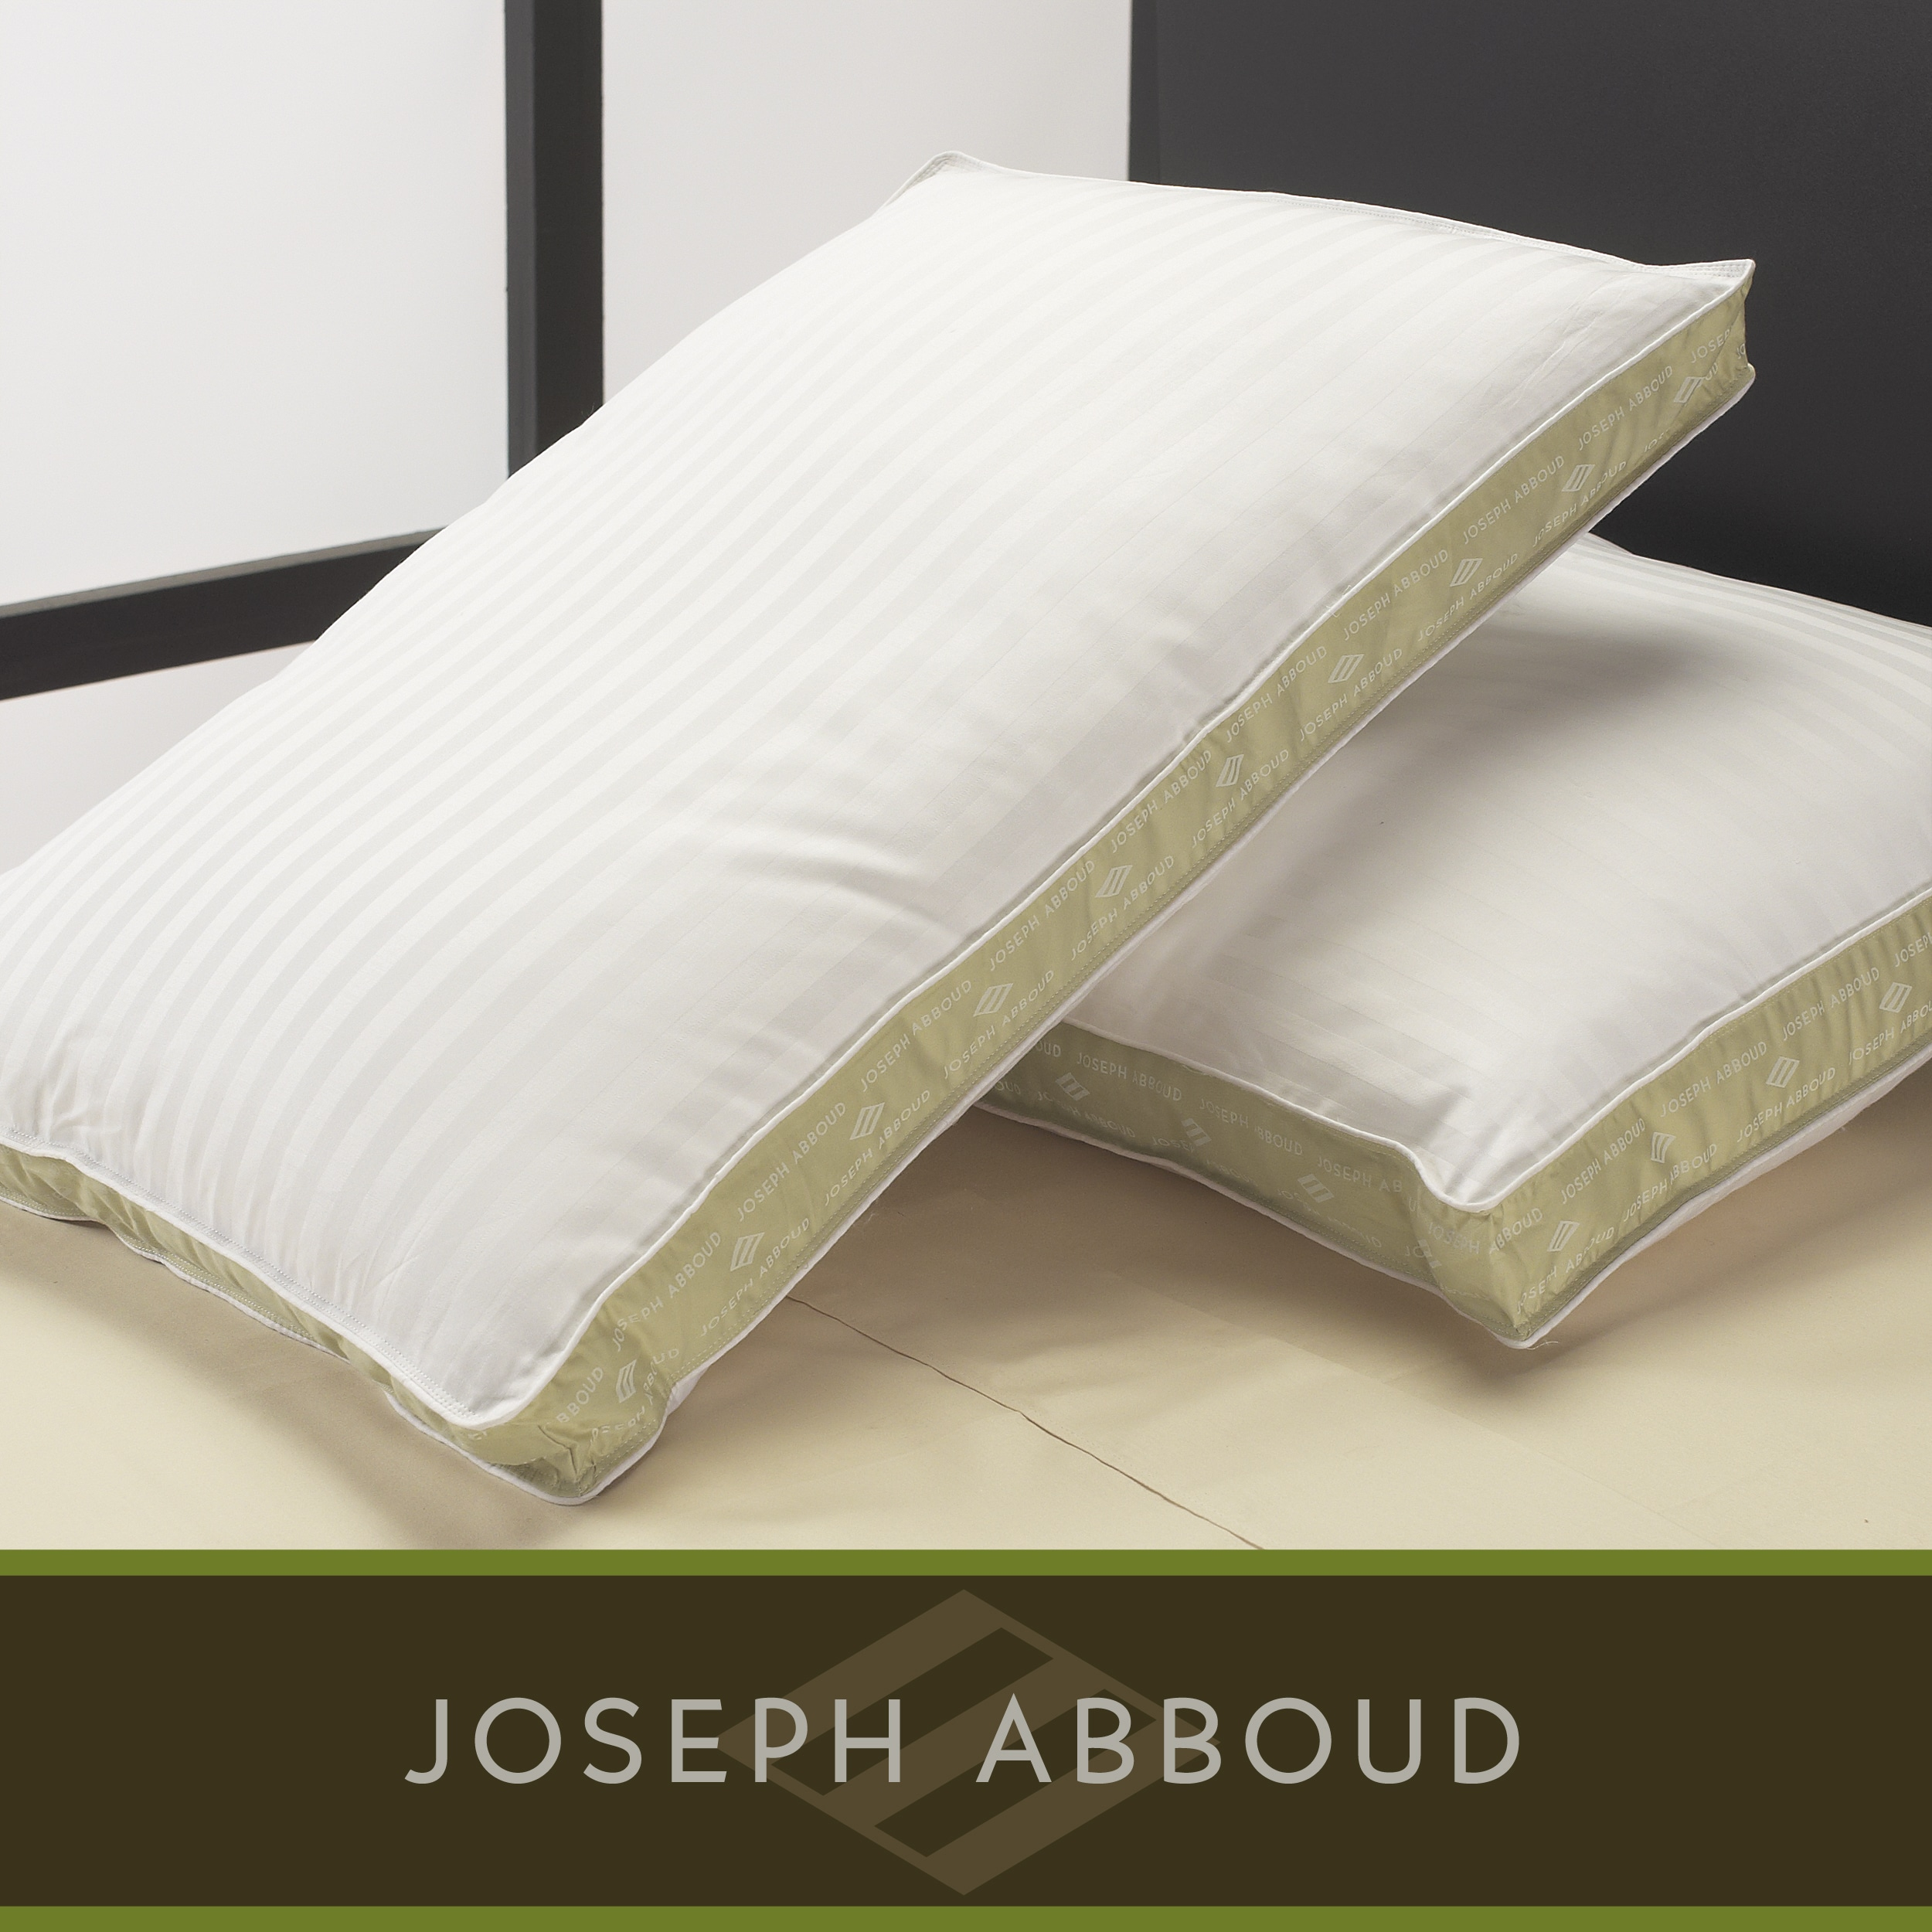 Joseph Abboud Sophistication Down-like Pillows (Set of 2)